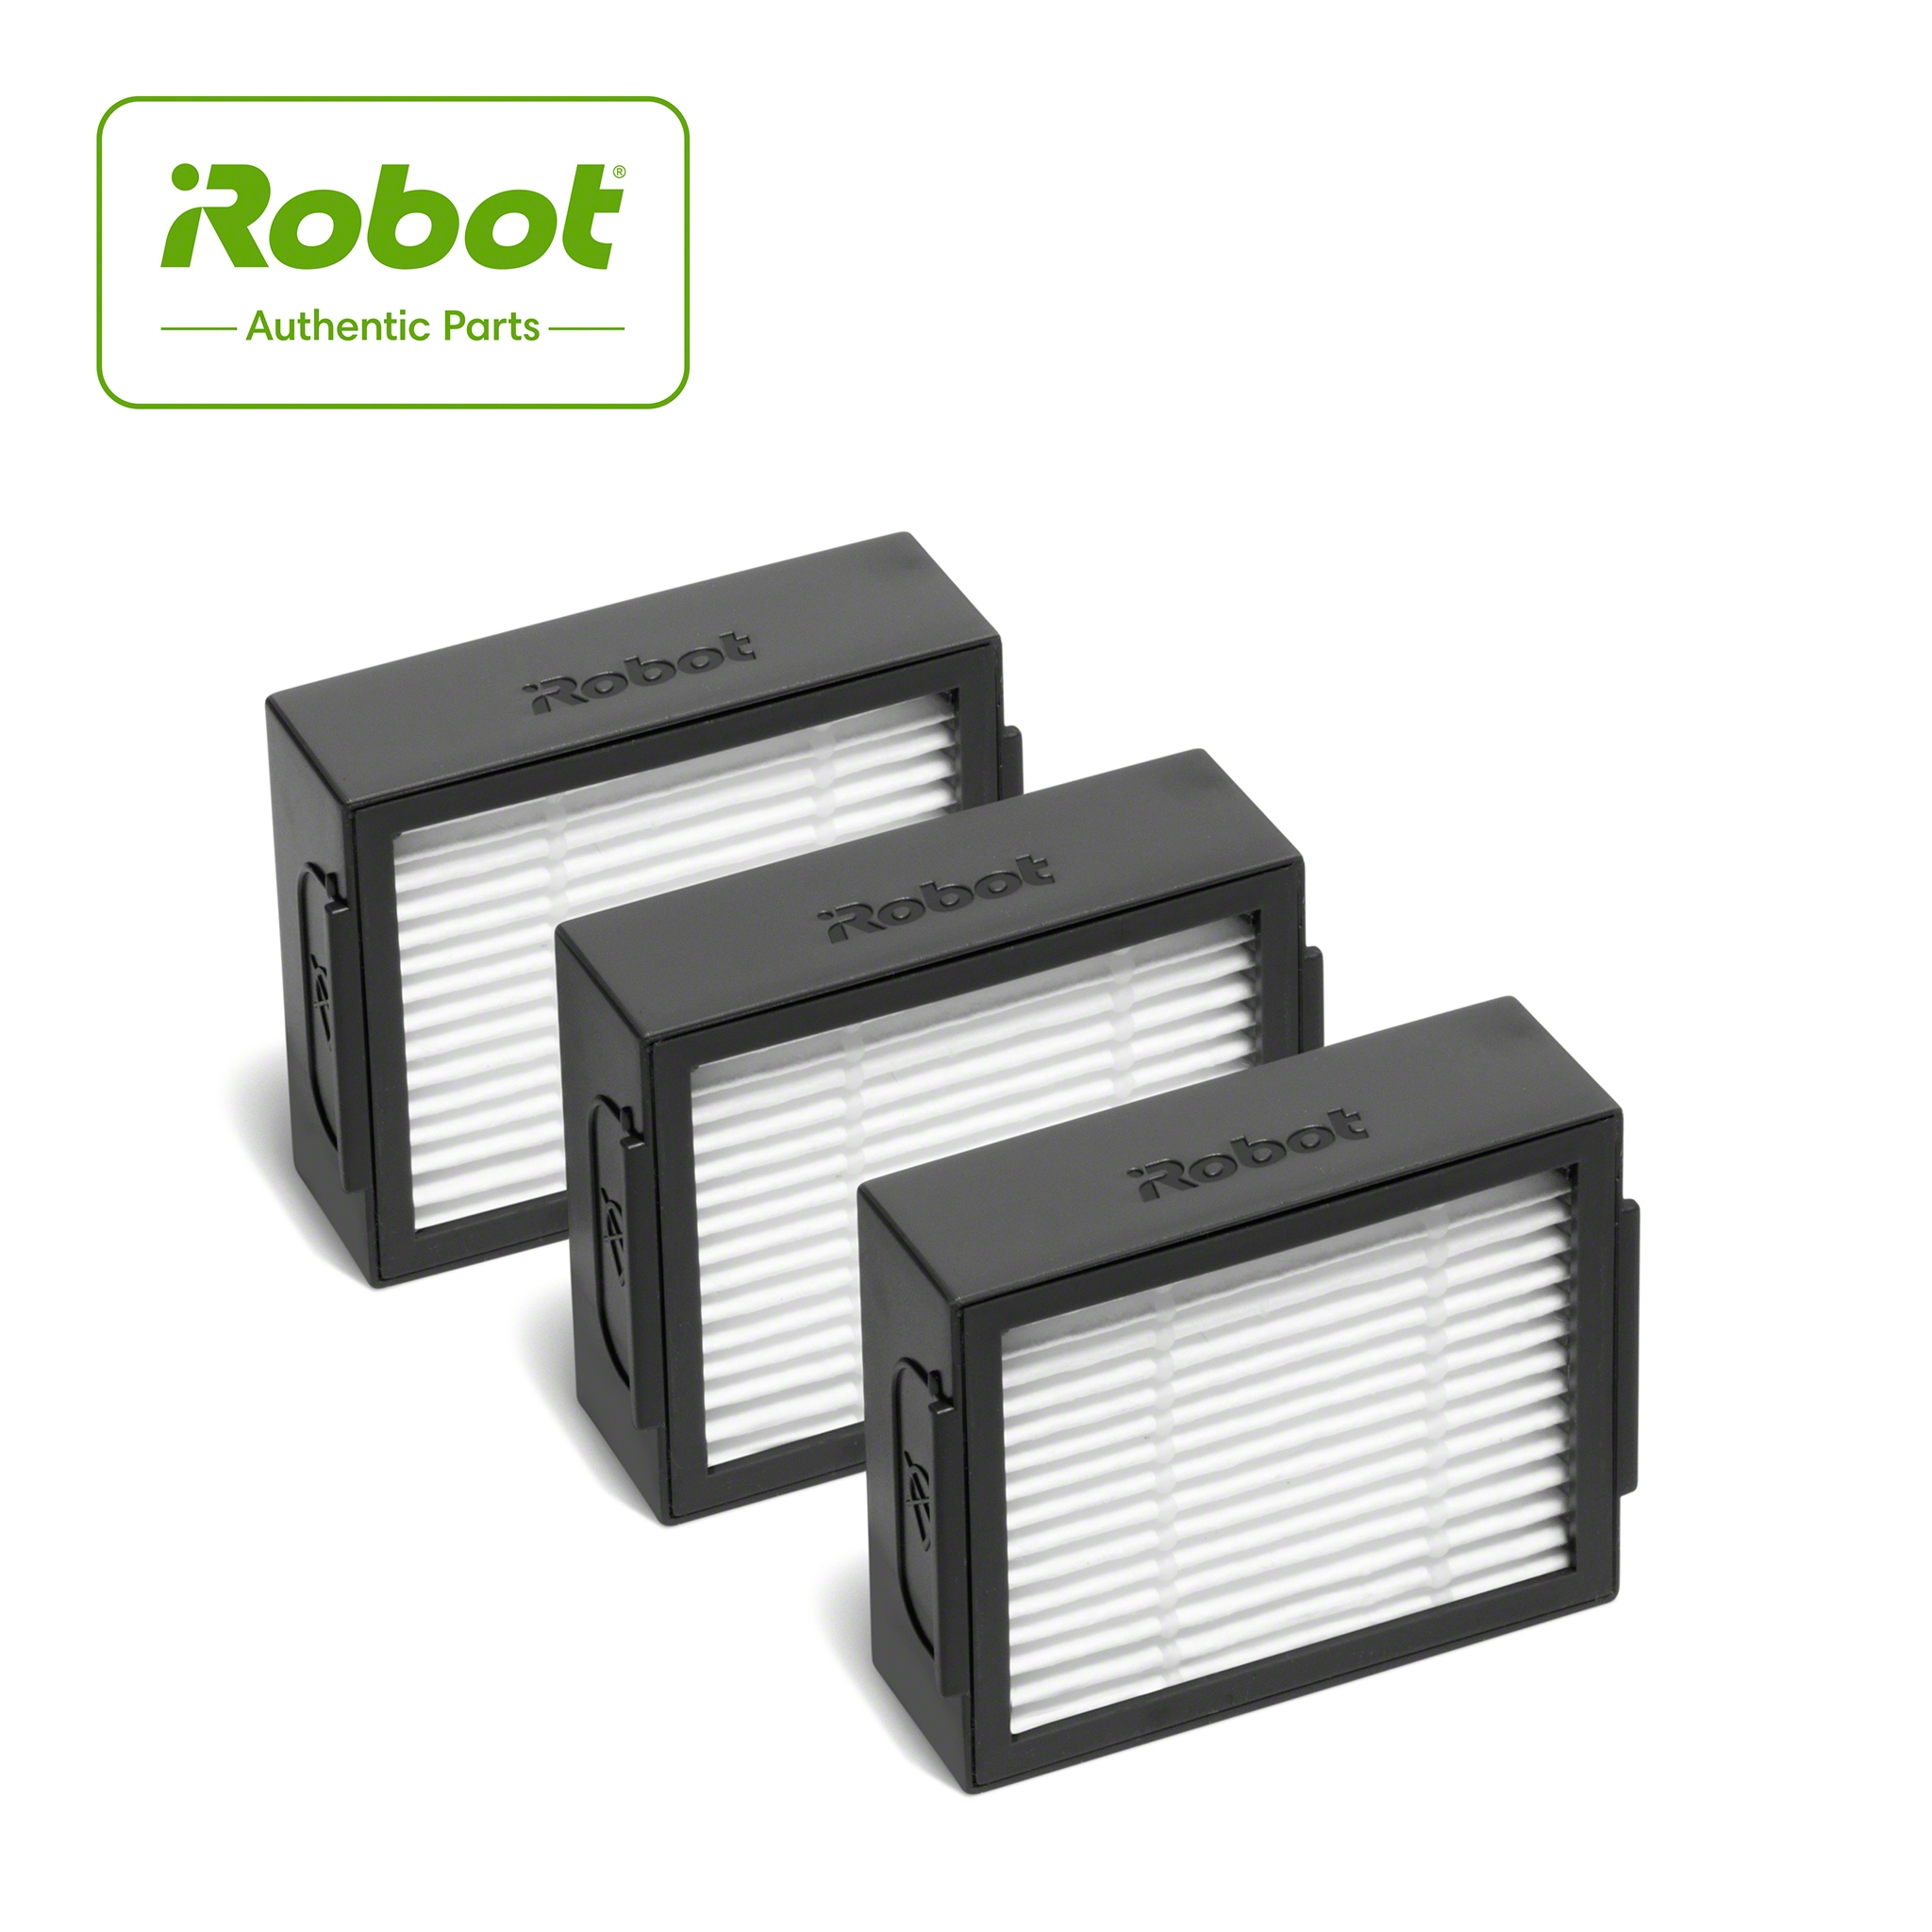 Authentic iRobot Parts 3 Pack Roomba 800 /& 900 Series AeroForce Filters